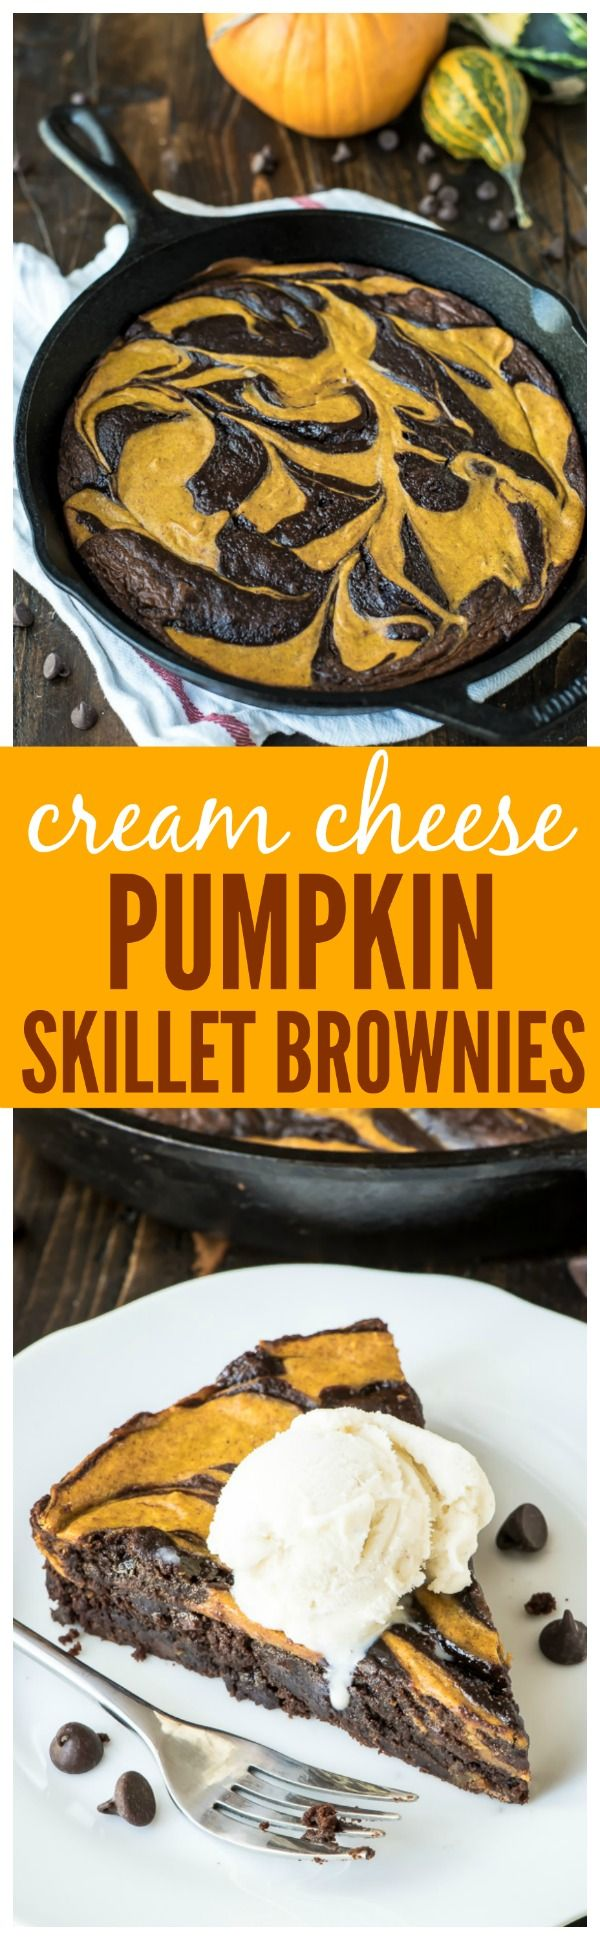 Best Ever Pumpkin Brownies. Pumpkin cheesecake swirled with a fudgy brownie to make the best ever pumpkin dessert recipe!